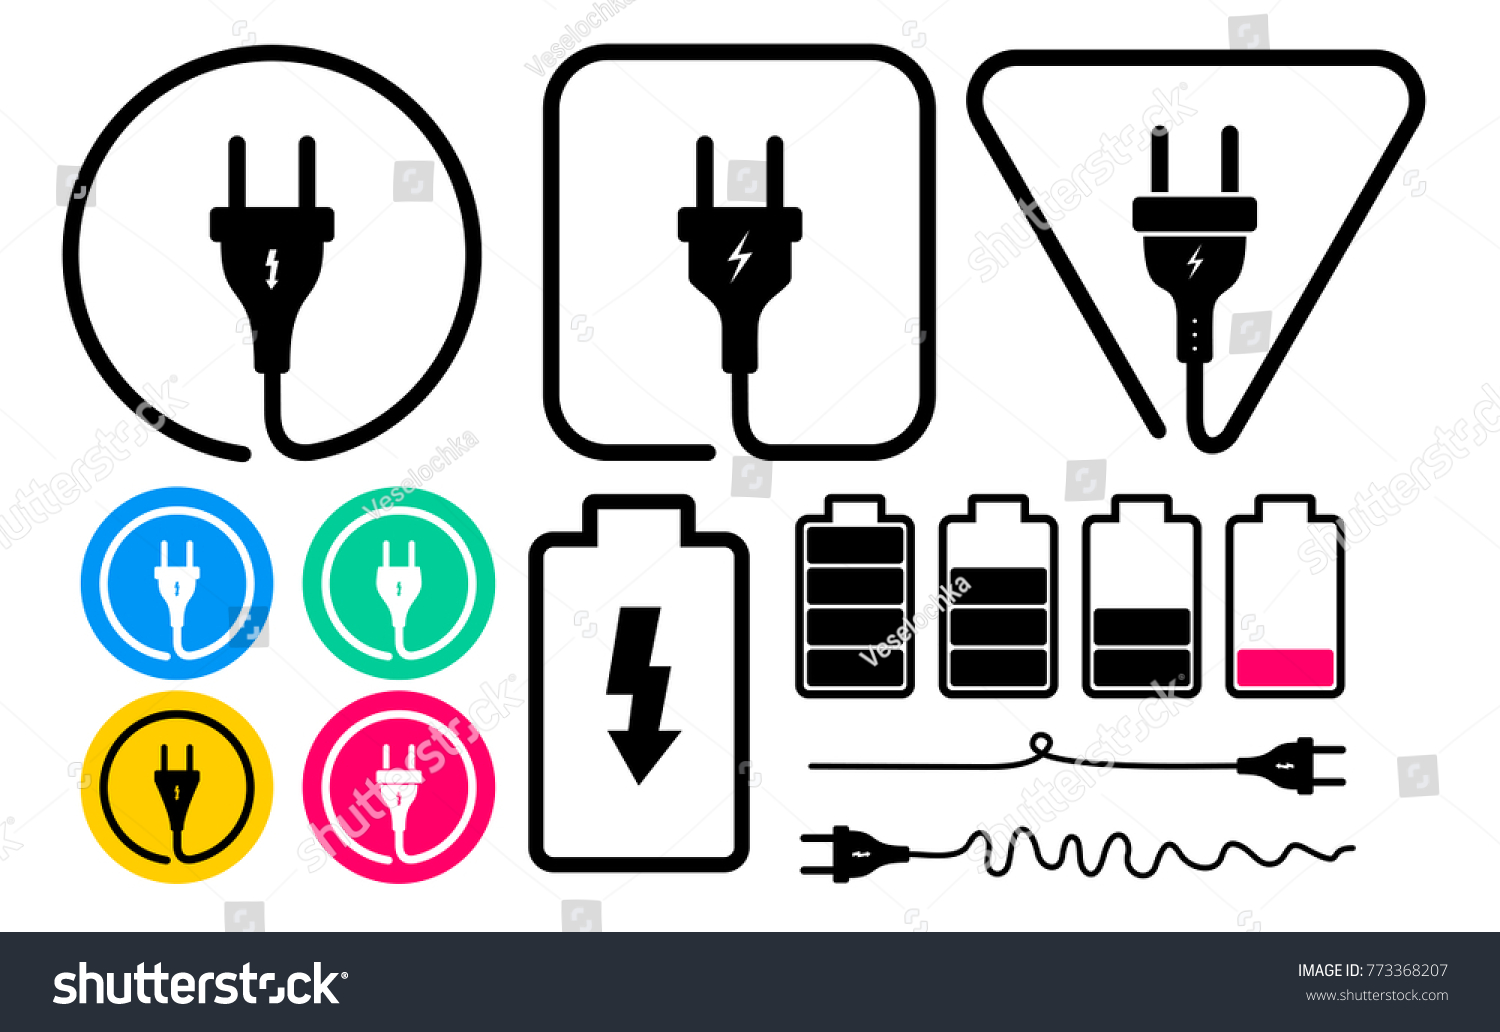 Set Electric Plug Icon Battery Symbols Stock Vector (2018) 773368207 ...